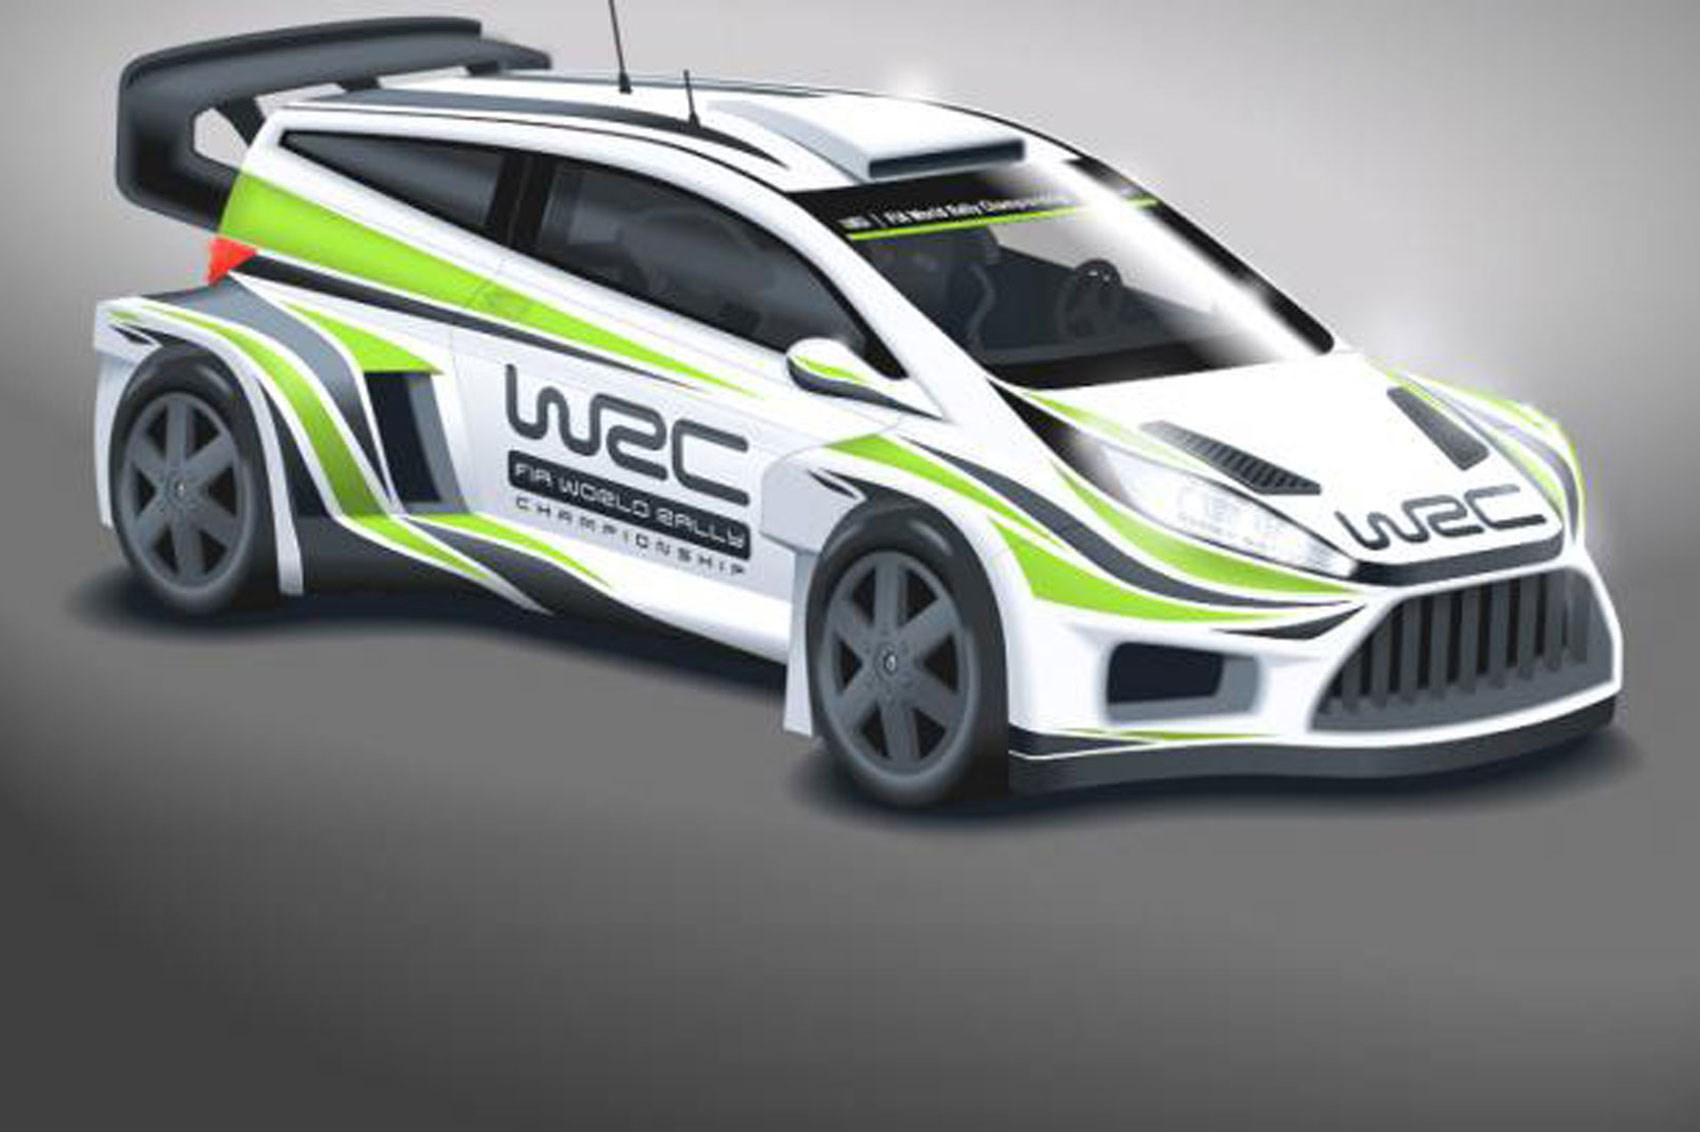 Ultrablogus  Pleasing Wild New Look For Wrc Cars In  By Car Magazine With Exquisite Wrc Cars Will Get Wider Bodies Bigger Wings And More Power For  With Amusing Prius V Interior Dimensions Also  Chevy Tahoe Interior In Addition  Honda Pilot Interior And How To Detail A Car Interior Professionally As Well As Best Car Interior Ever Additionally Kia Optima  Interior From Carmagazinecouk With Ultrablogus  Exquisite Wild New Look For Wrc Cars In  By Car Magazine With Amusing Wrc Cars Will Get Wider Bodies Bigger Wings And More Power For  And Pleasing Prius V Interior Dimensions Also  Chevy Tahoe Interior In Addition  Honda Pilot Interior From Carmagazinecouk